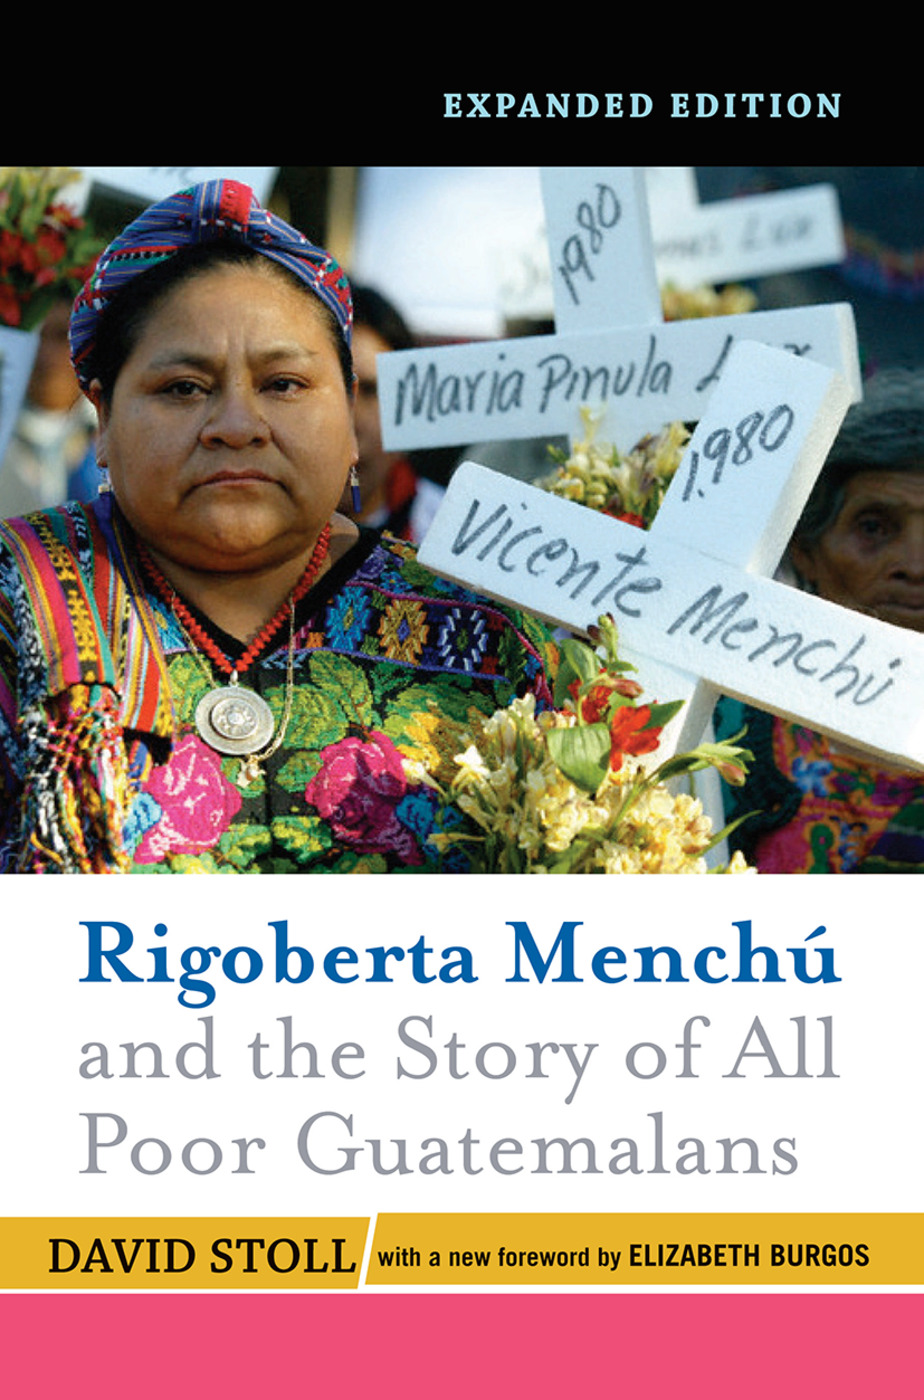 Rigoberta Menchu and the Story of All Poor Guatemalans: New Foreword by Elizabeth Burgos book cover